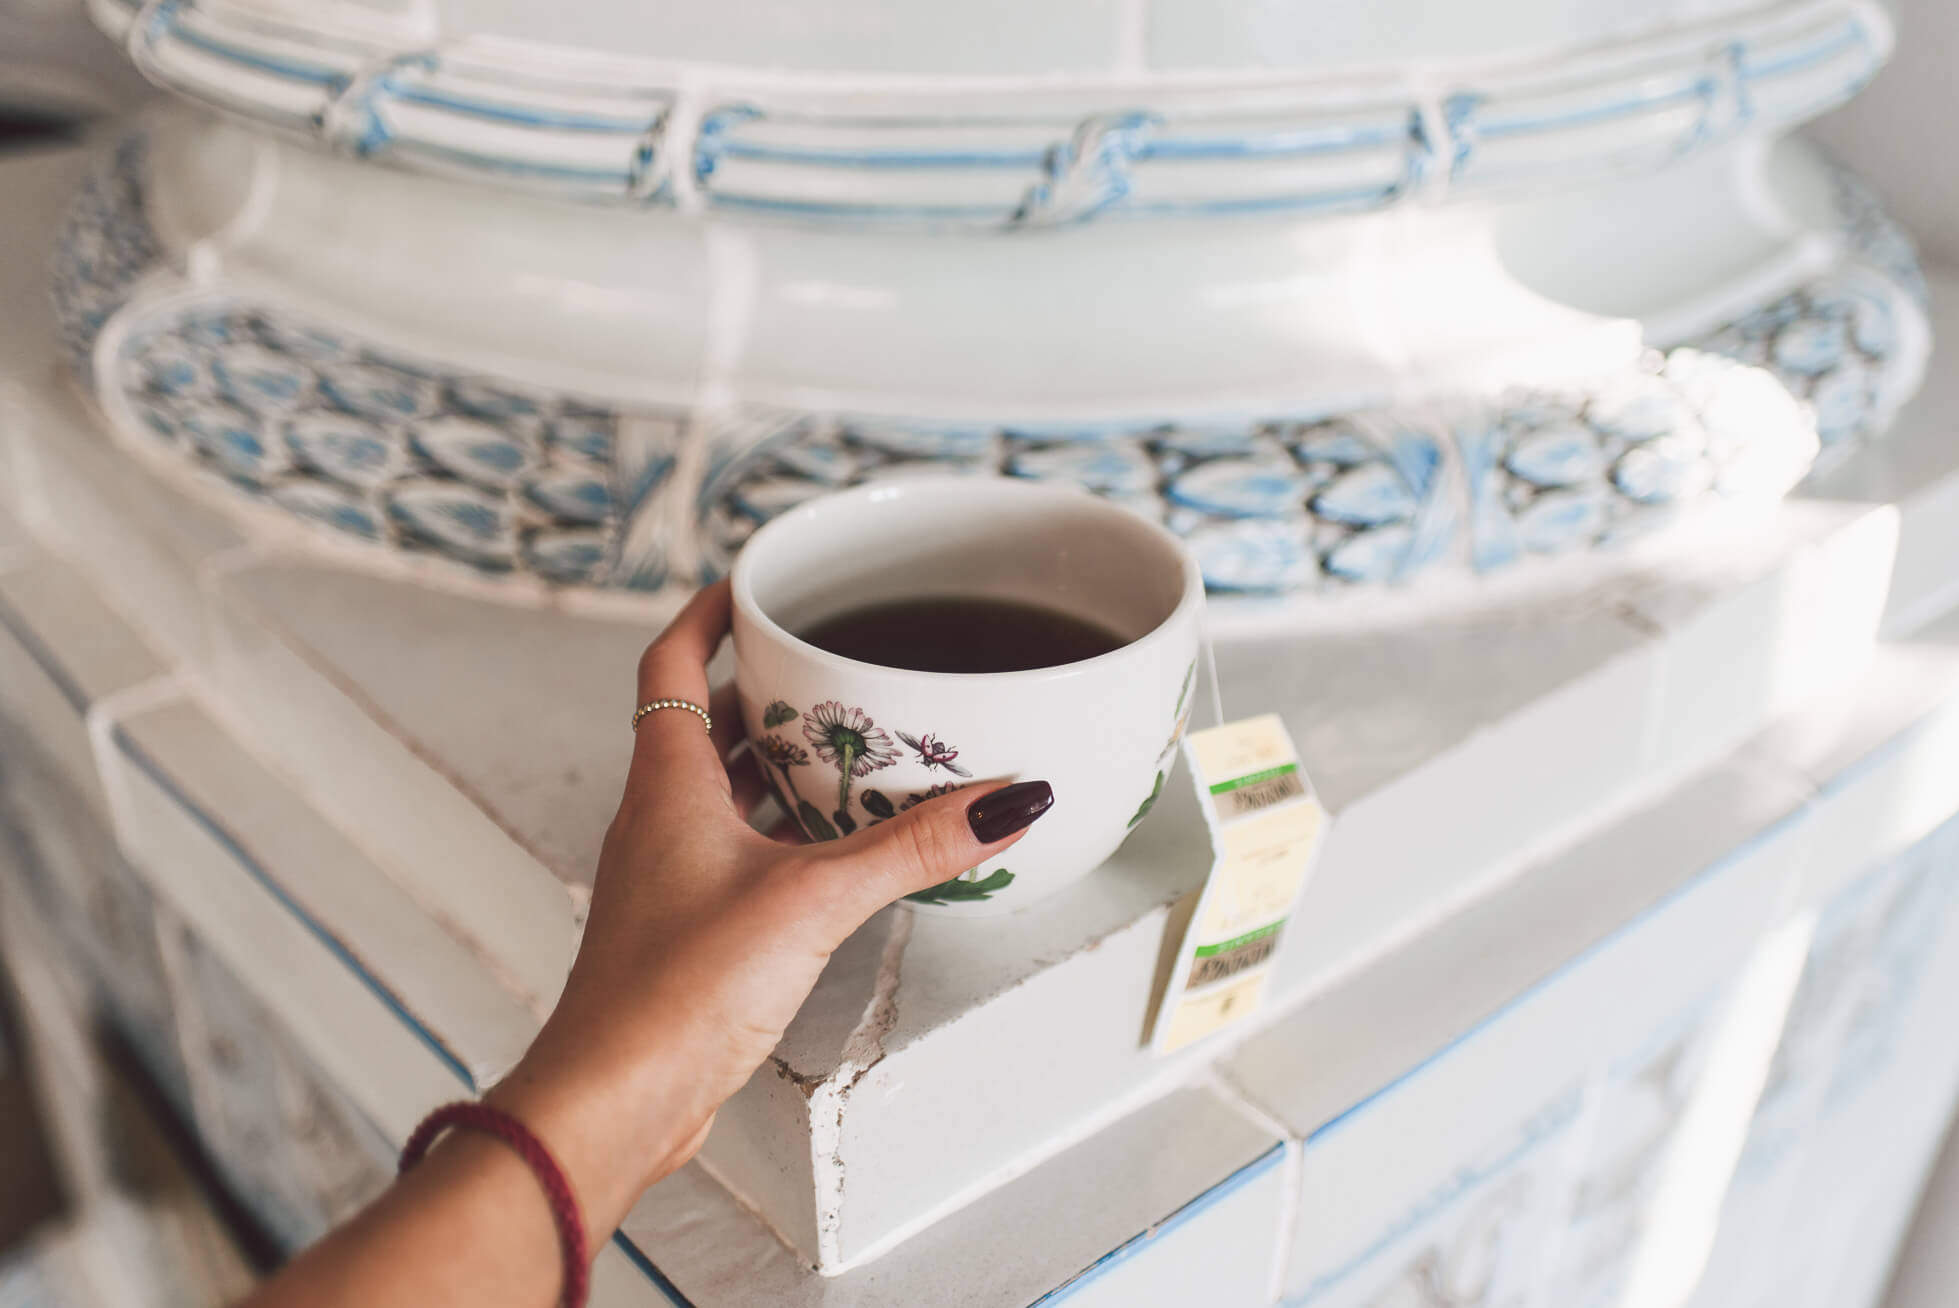 janni-deler-cup-of-teaDSC_6190